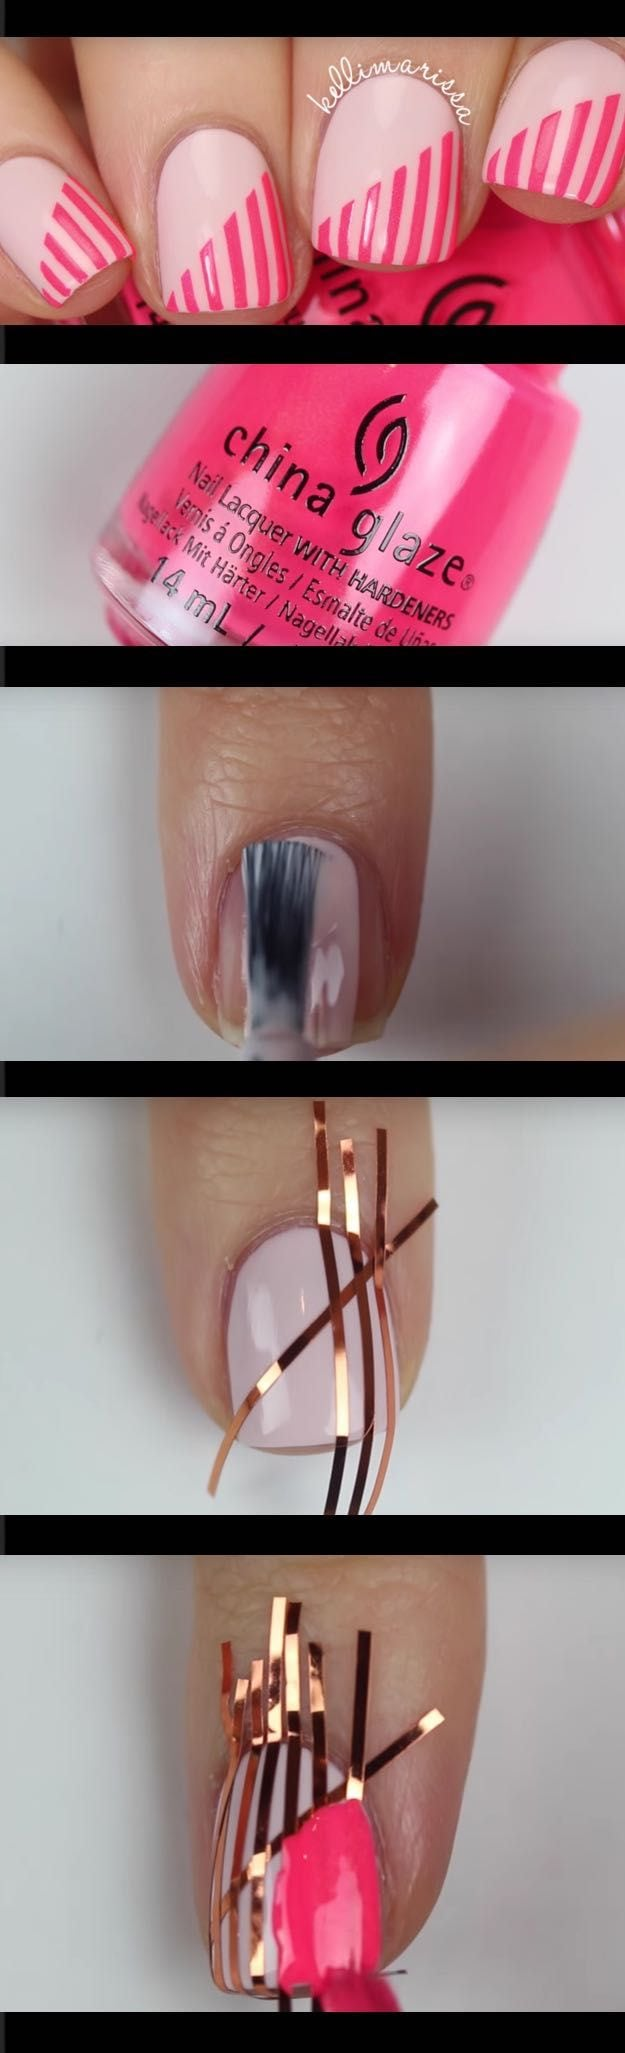 Super Easy Nail Art Ideas for Beginners – DIY Beginner Striping Tape Nail Art Tutorial KELLI MARISSA – Simple Step By Step DIY Tutorials And Pictures For Nailart. Ideas For Every Style, All Hair Colors, Sparkle, Valentines, And other Awesome…